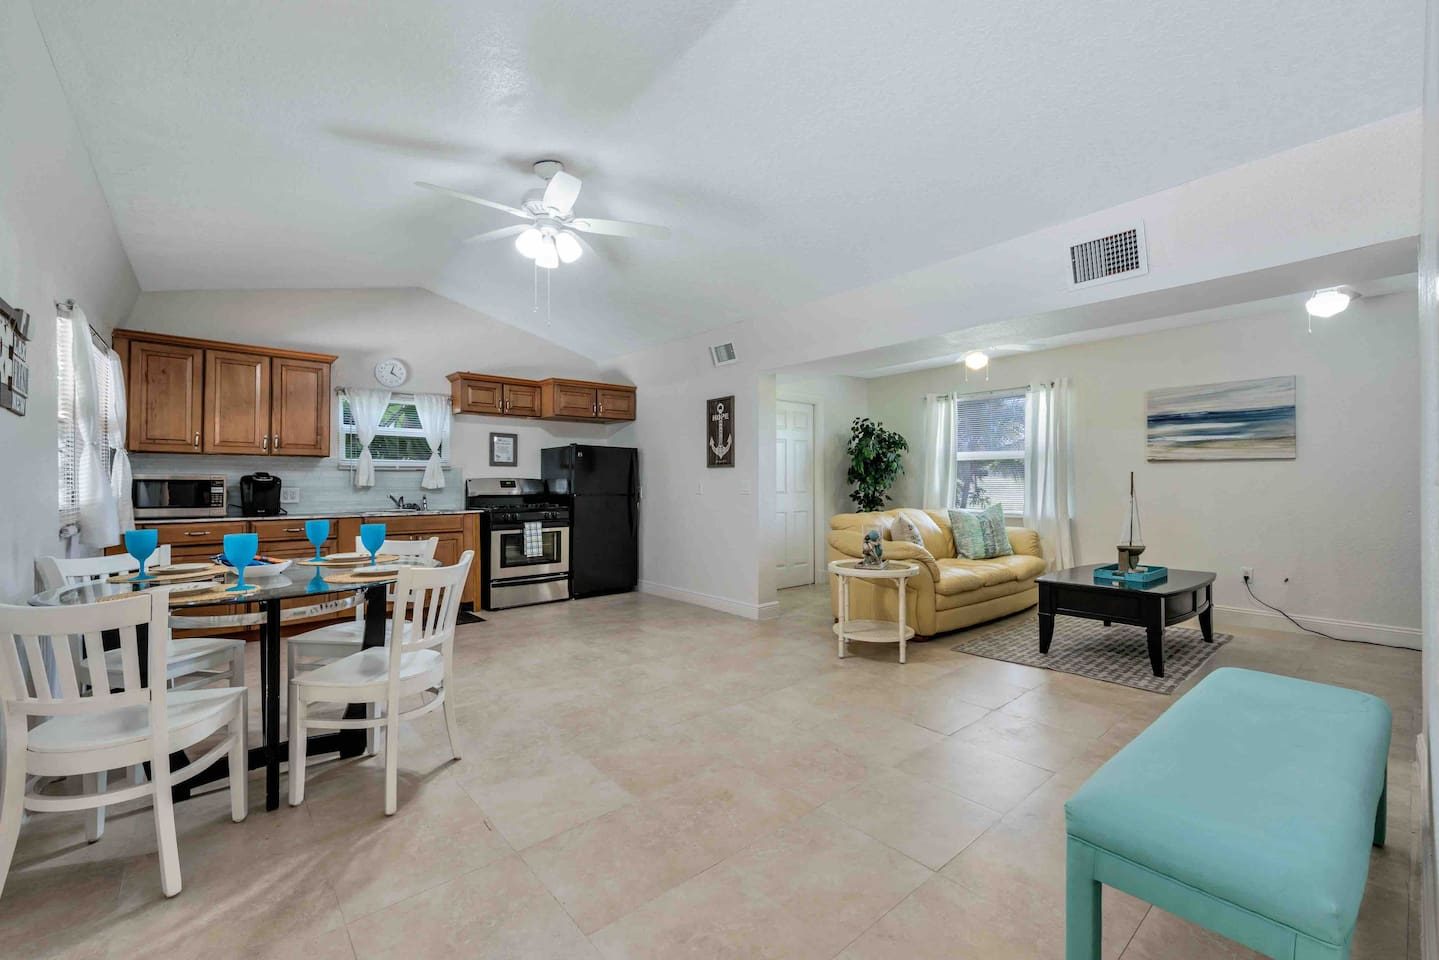 Open floor plan, separate laundry room, new appliances with gas stove, stocked kitchen,  tv but no cable so remember to bring your attachments for you phone or laptop